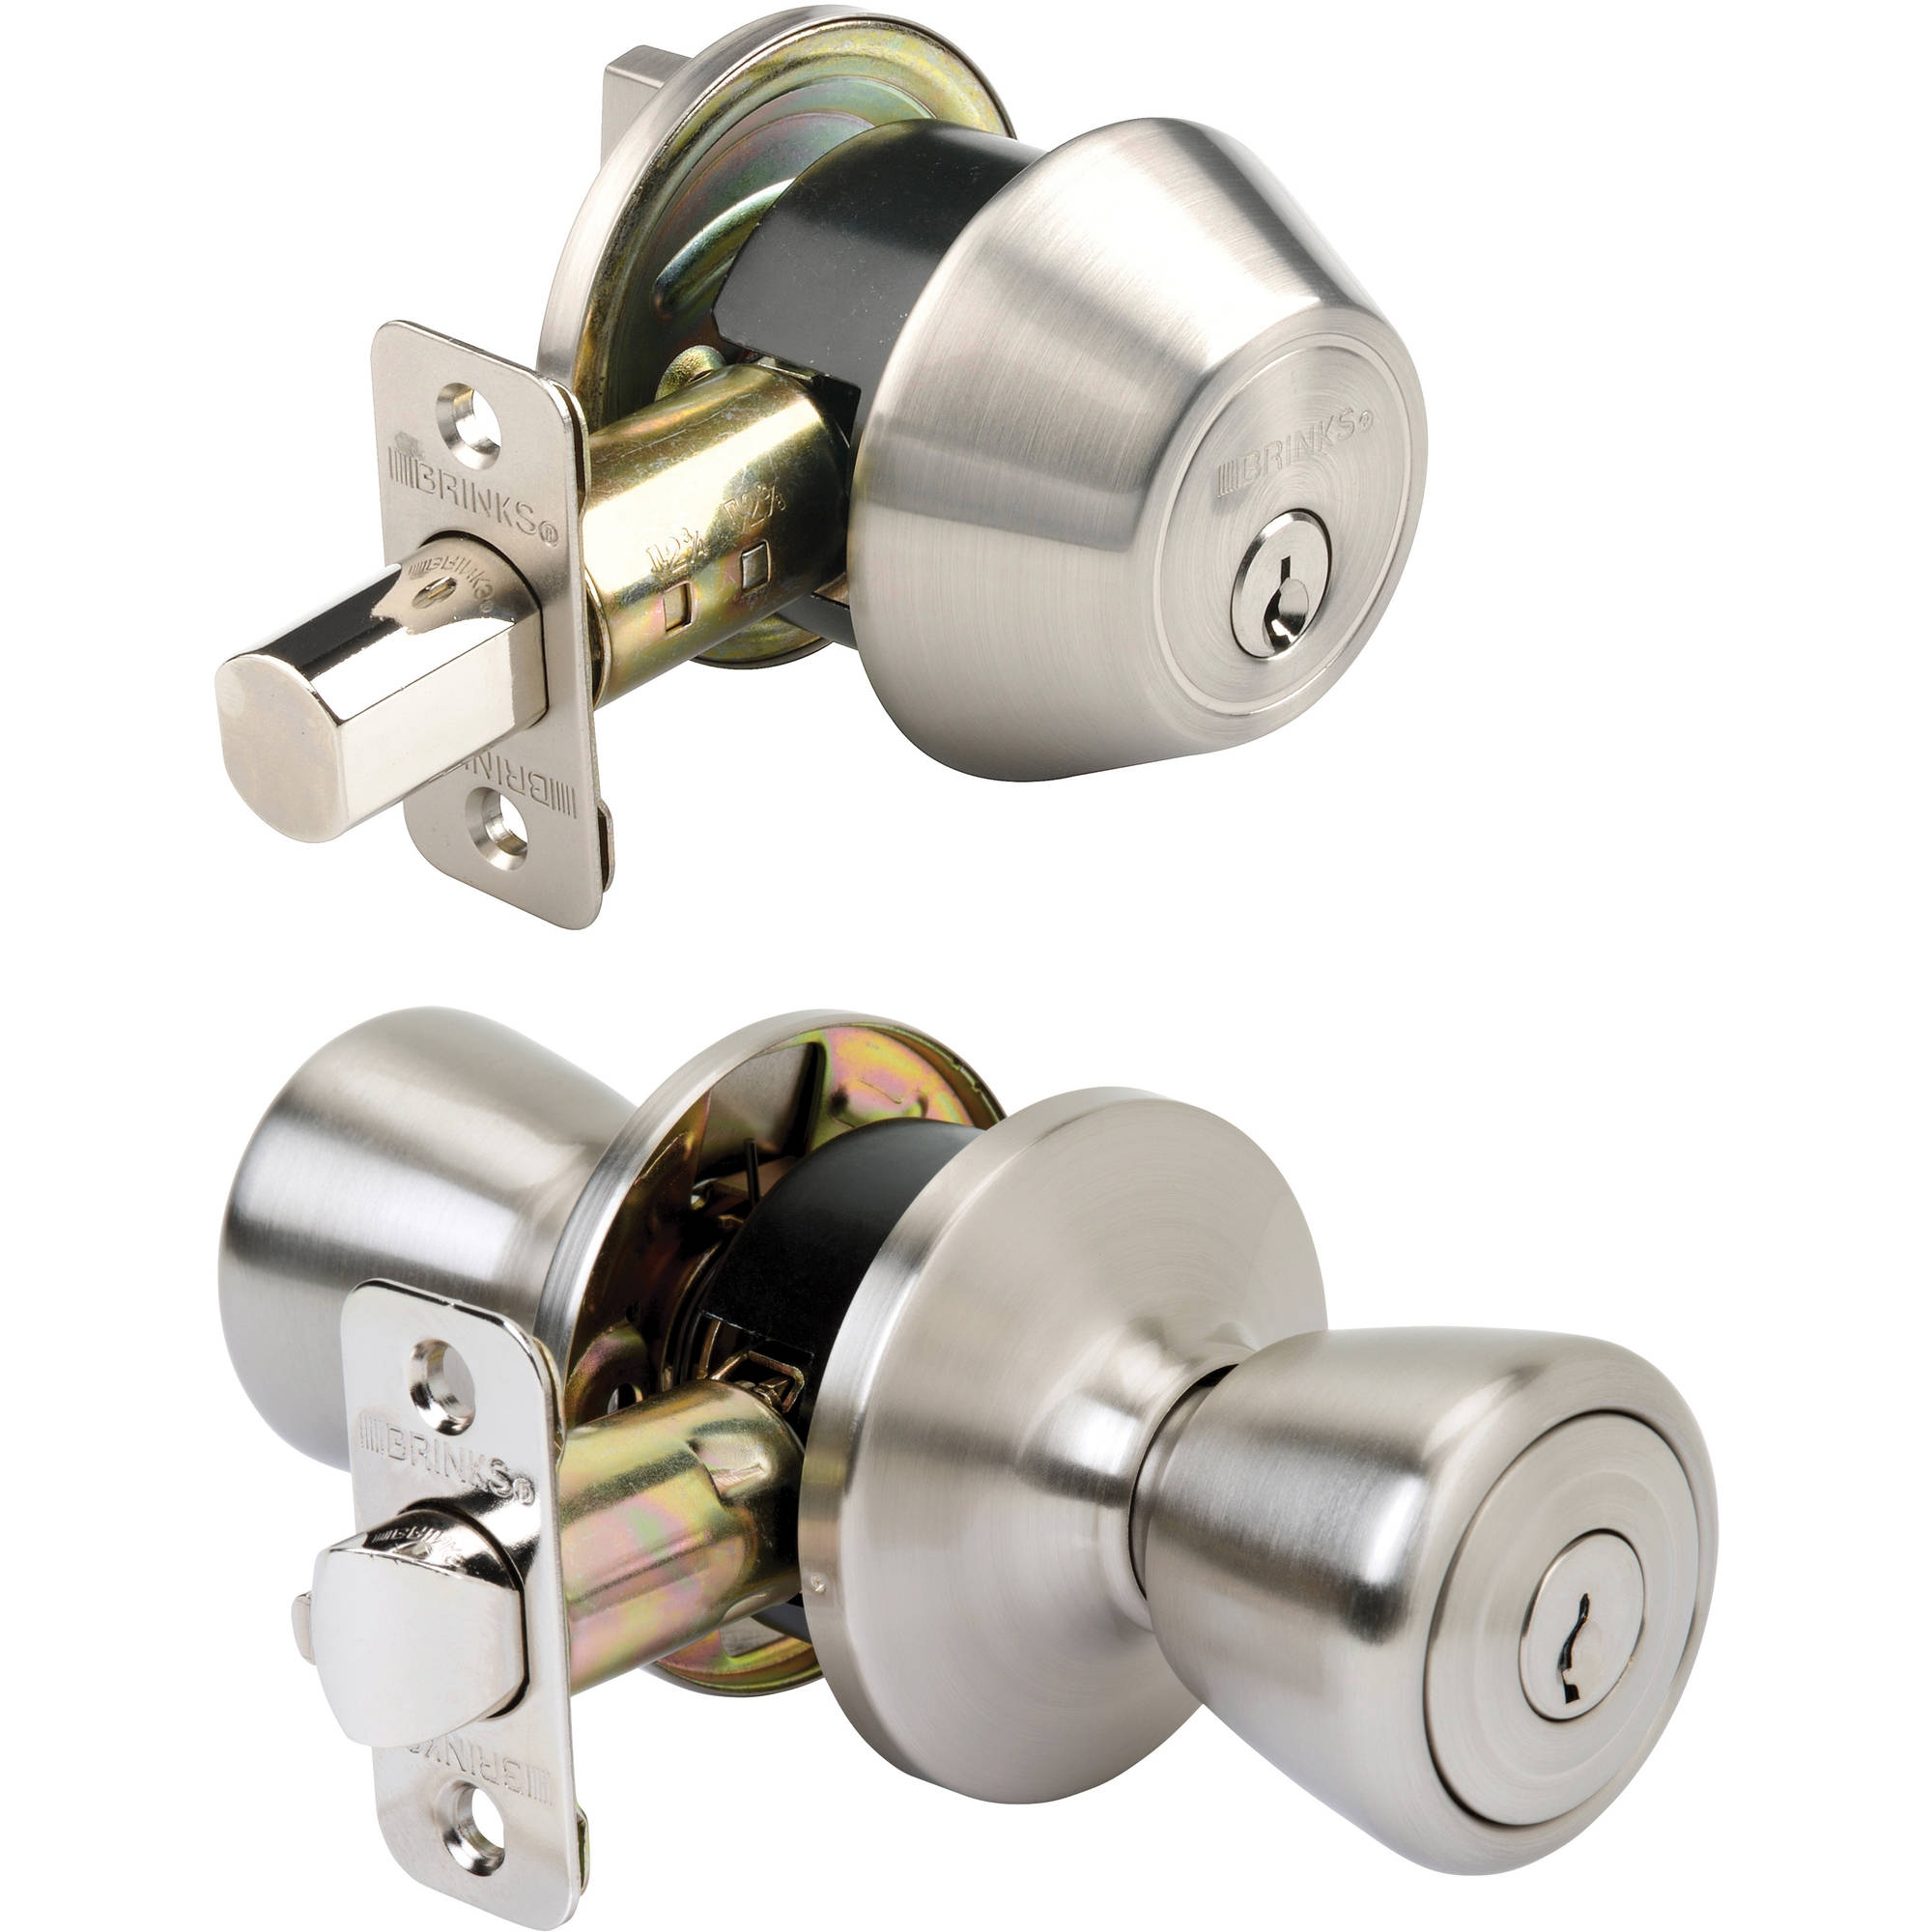 Door Knobs With Key Locks On Both Sides